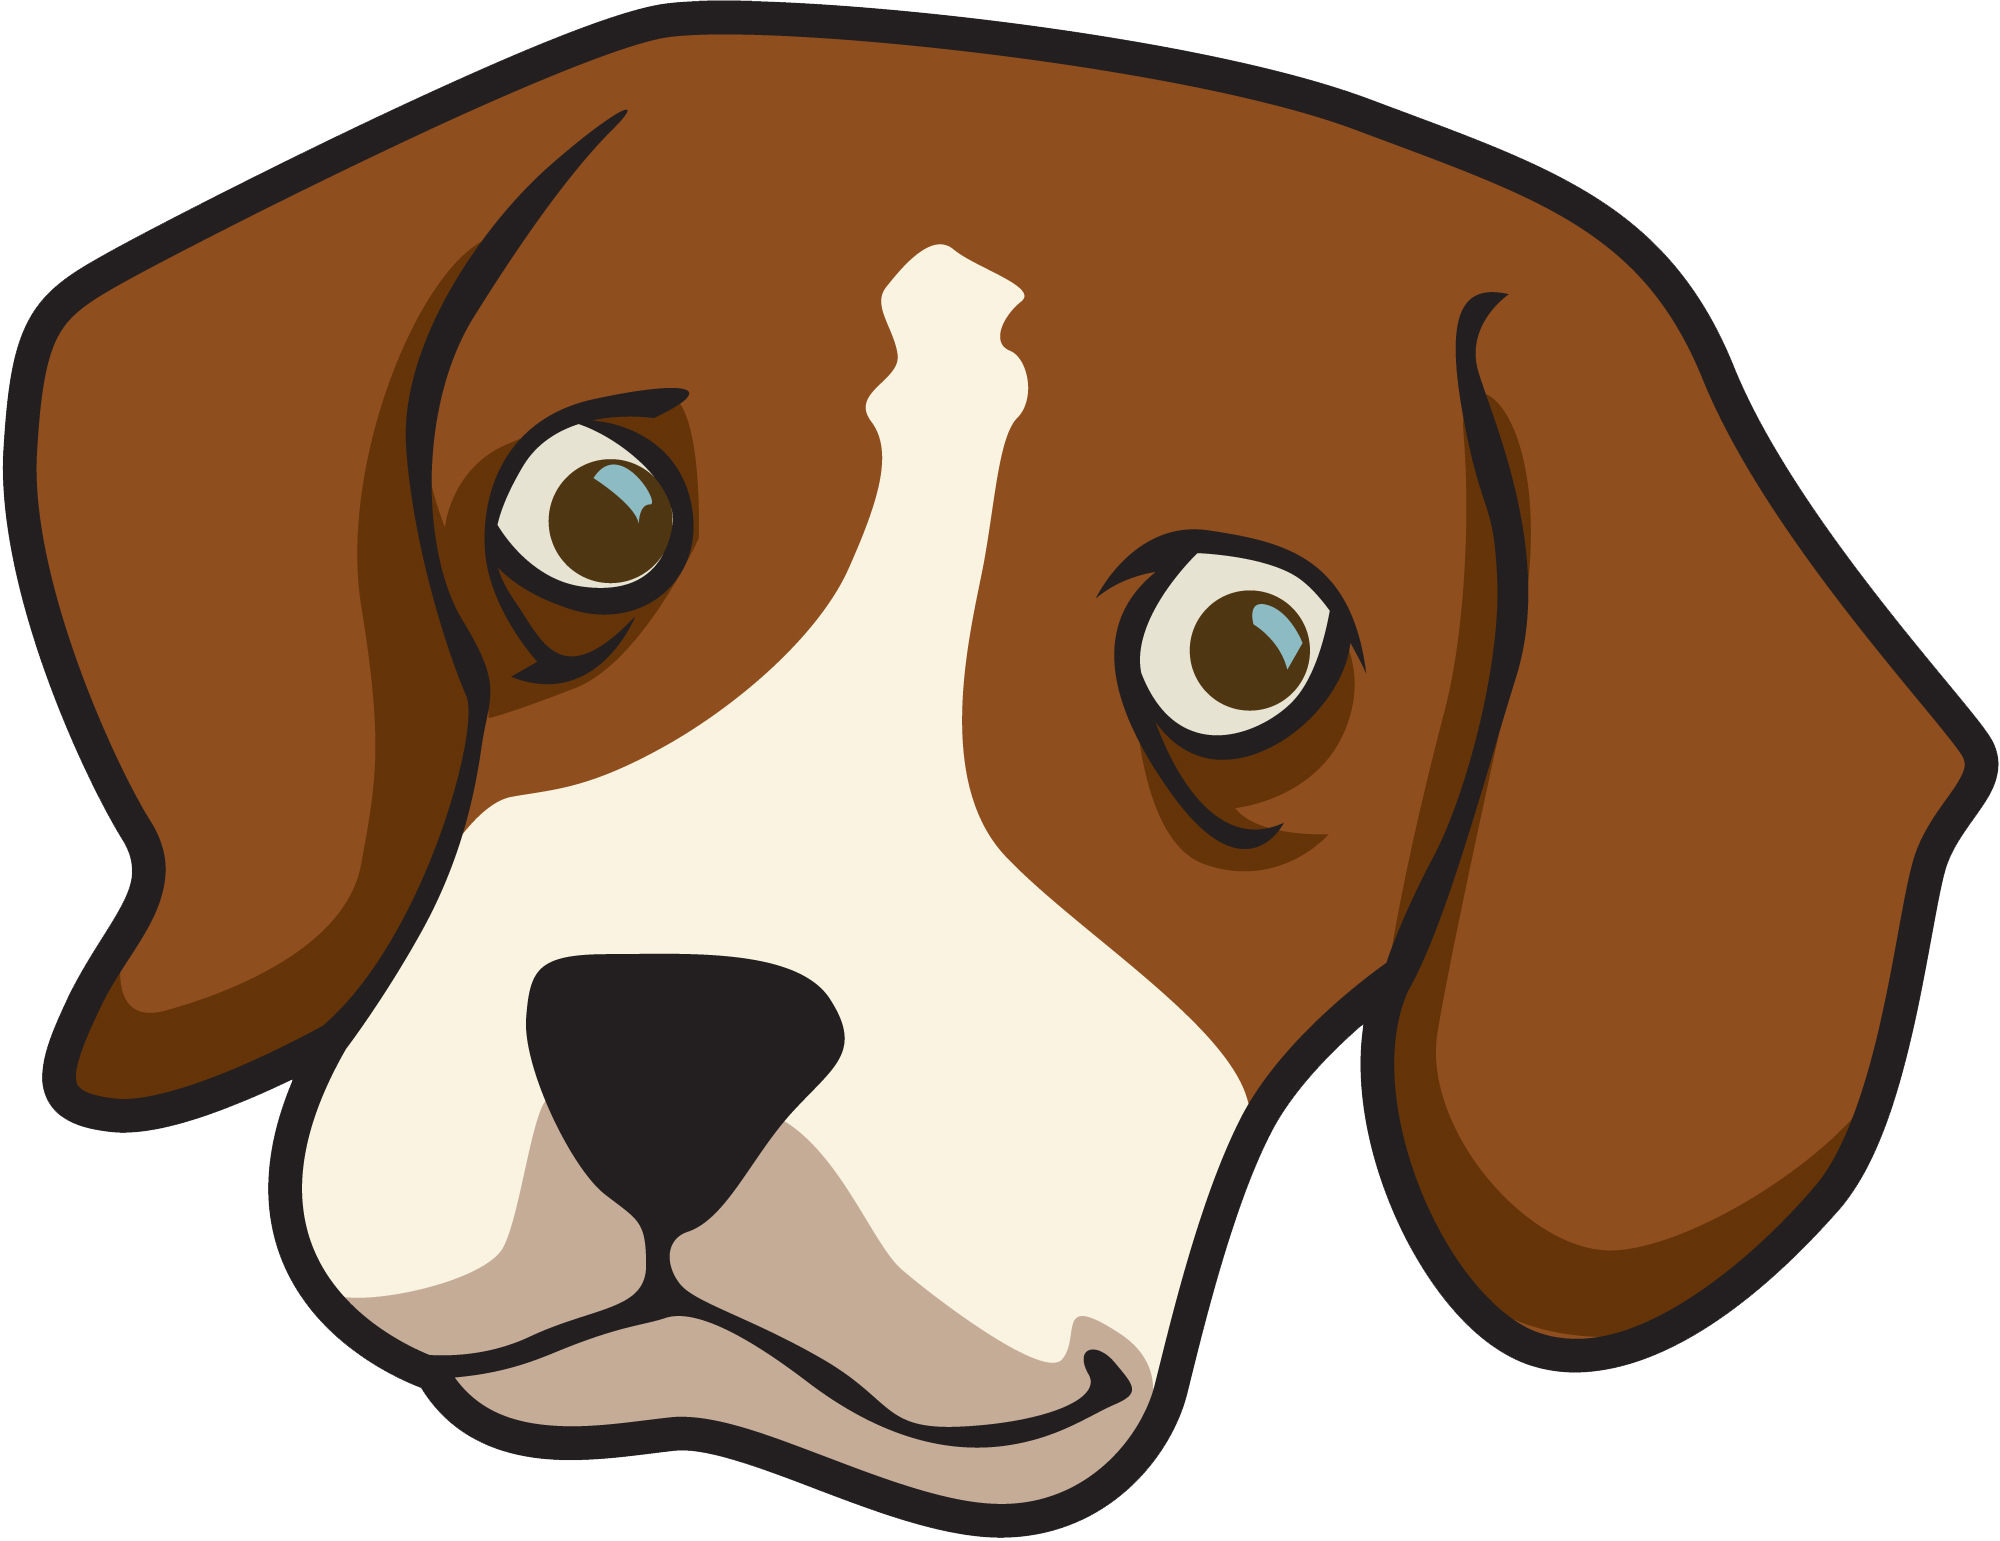 Face transparent free for. Dachshund clipart brown dachshund graphic freeuse download